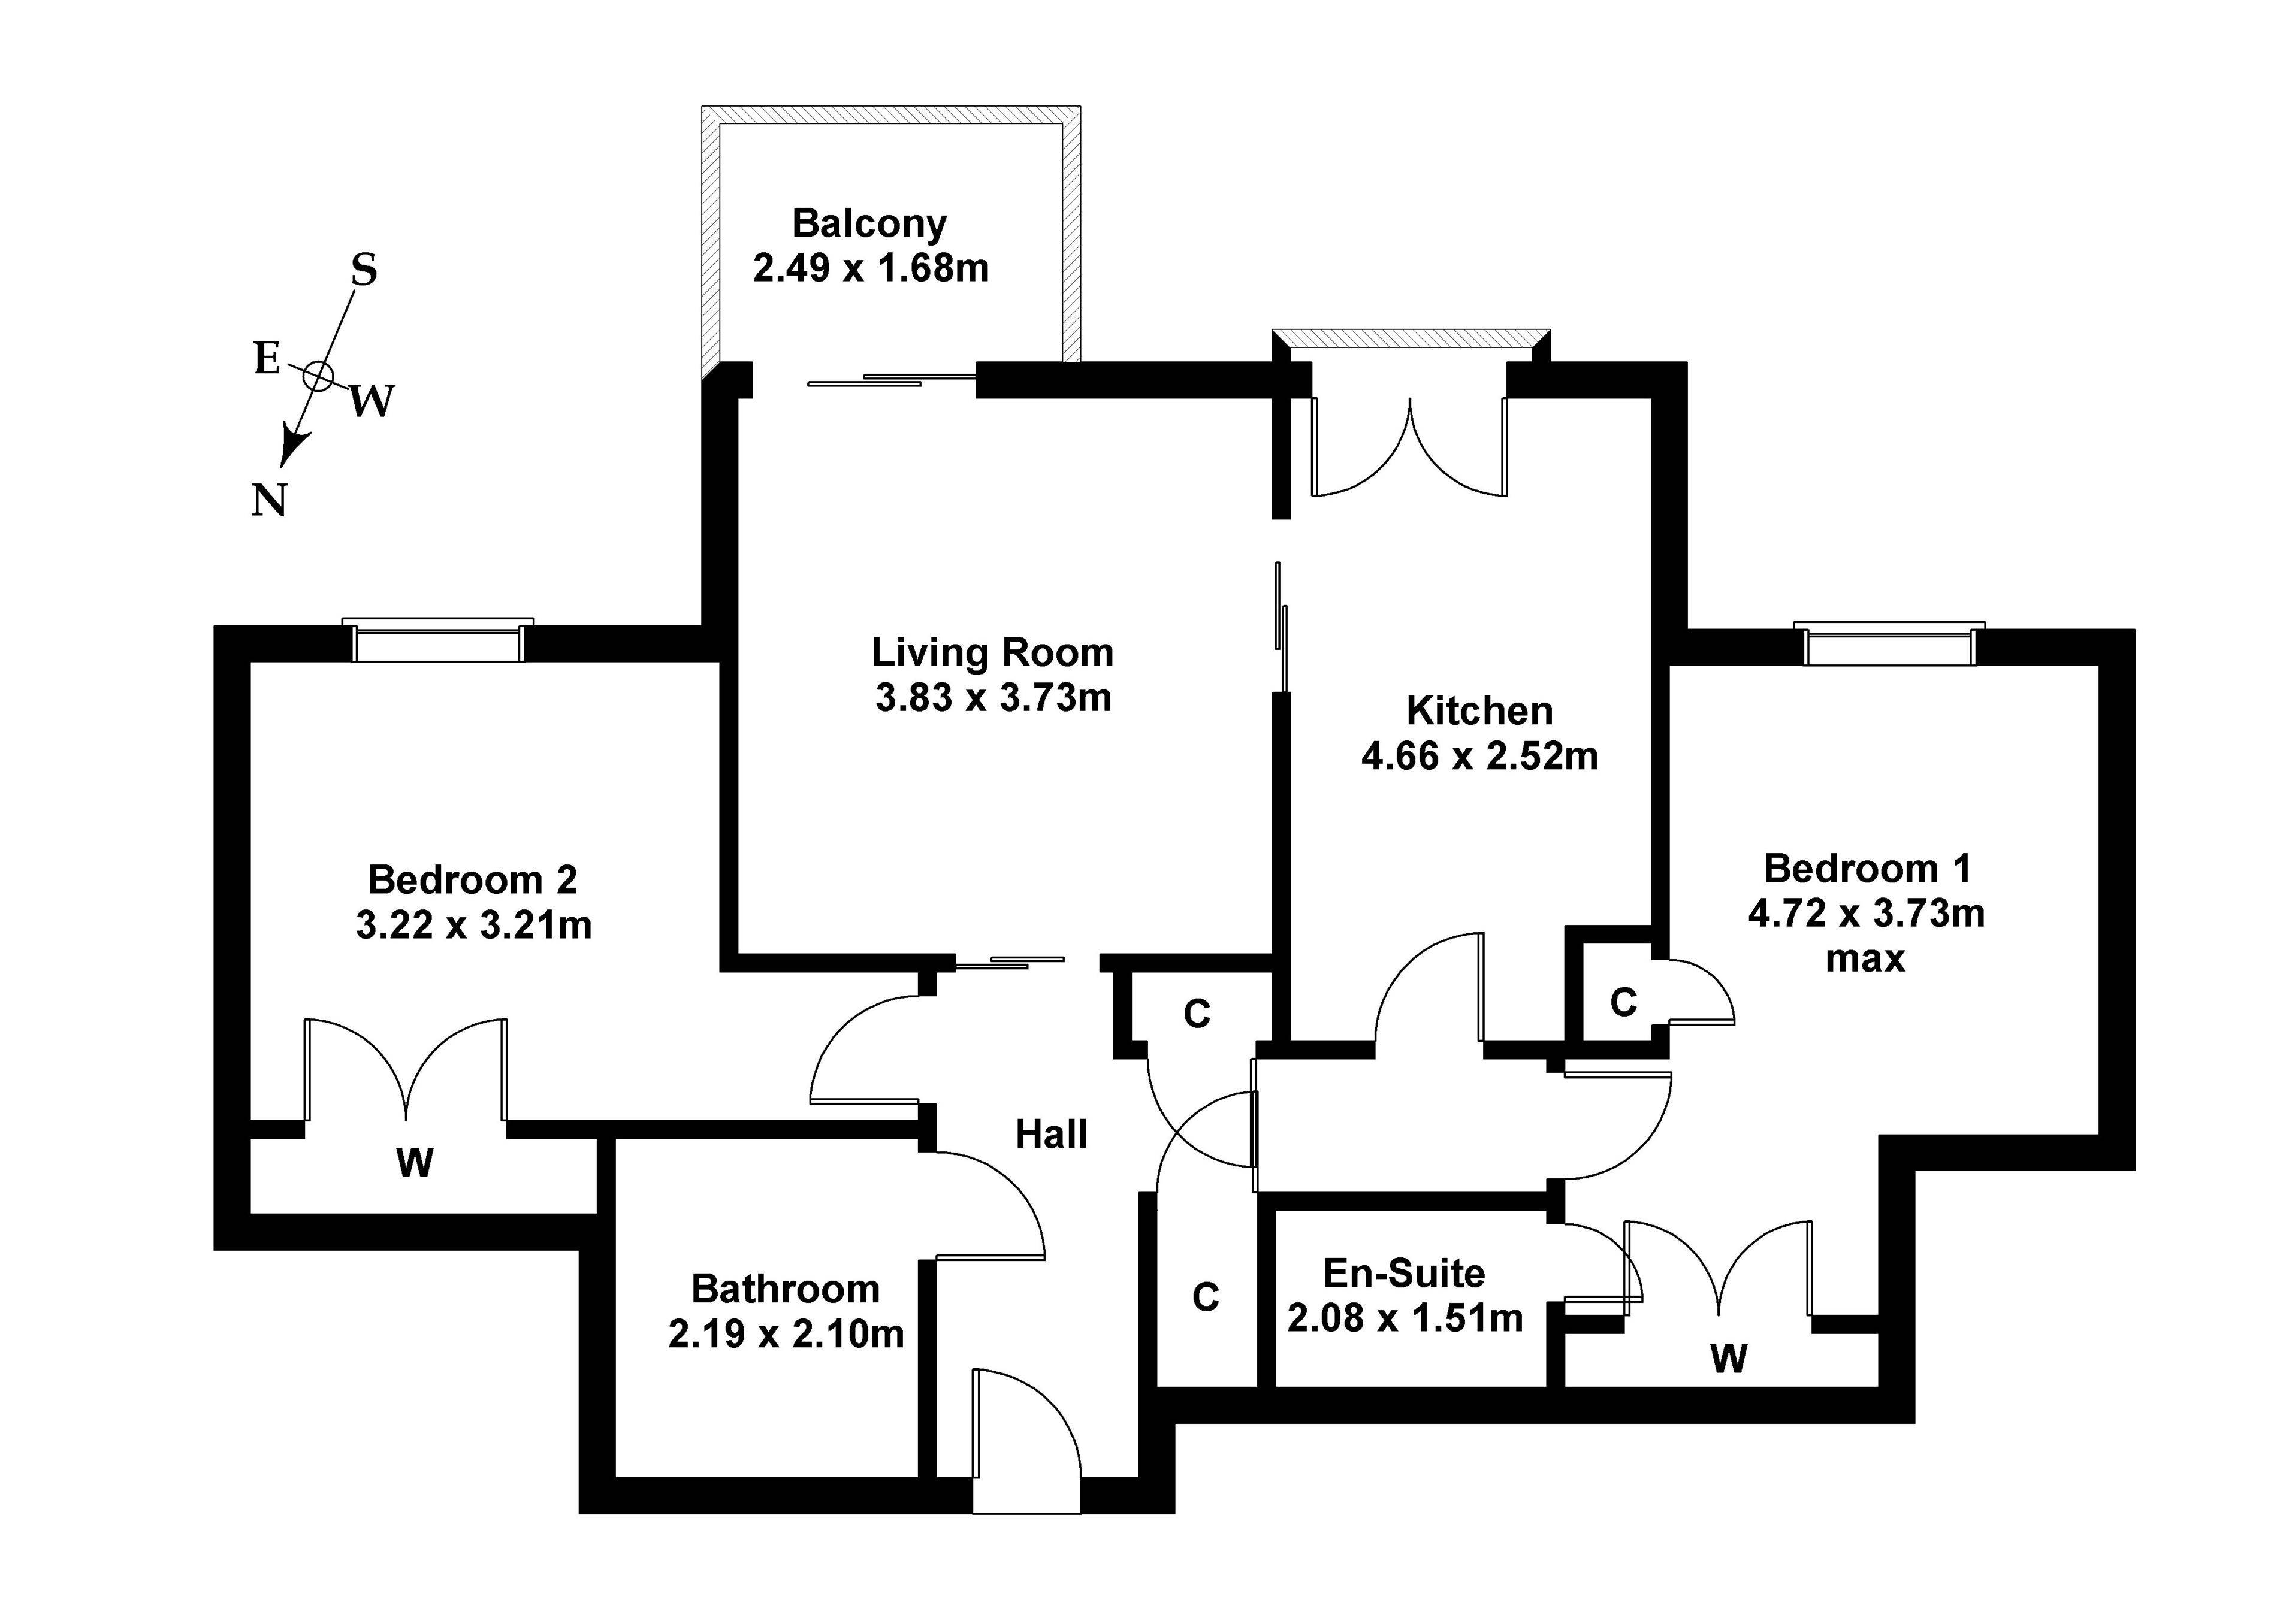 Floorplan 1 of 4/11, East Pilton Farm Avenue, East Fettes, Edinburgh, EH5 2GA